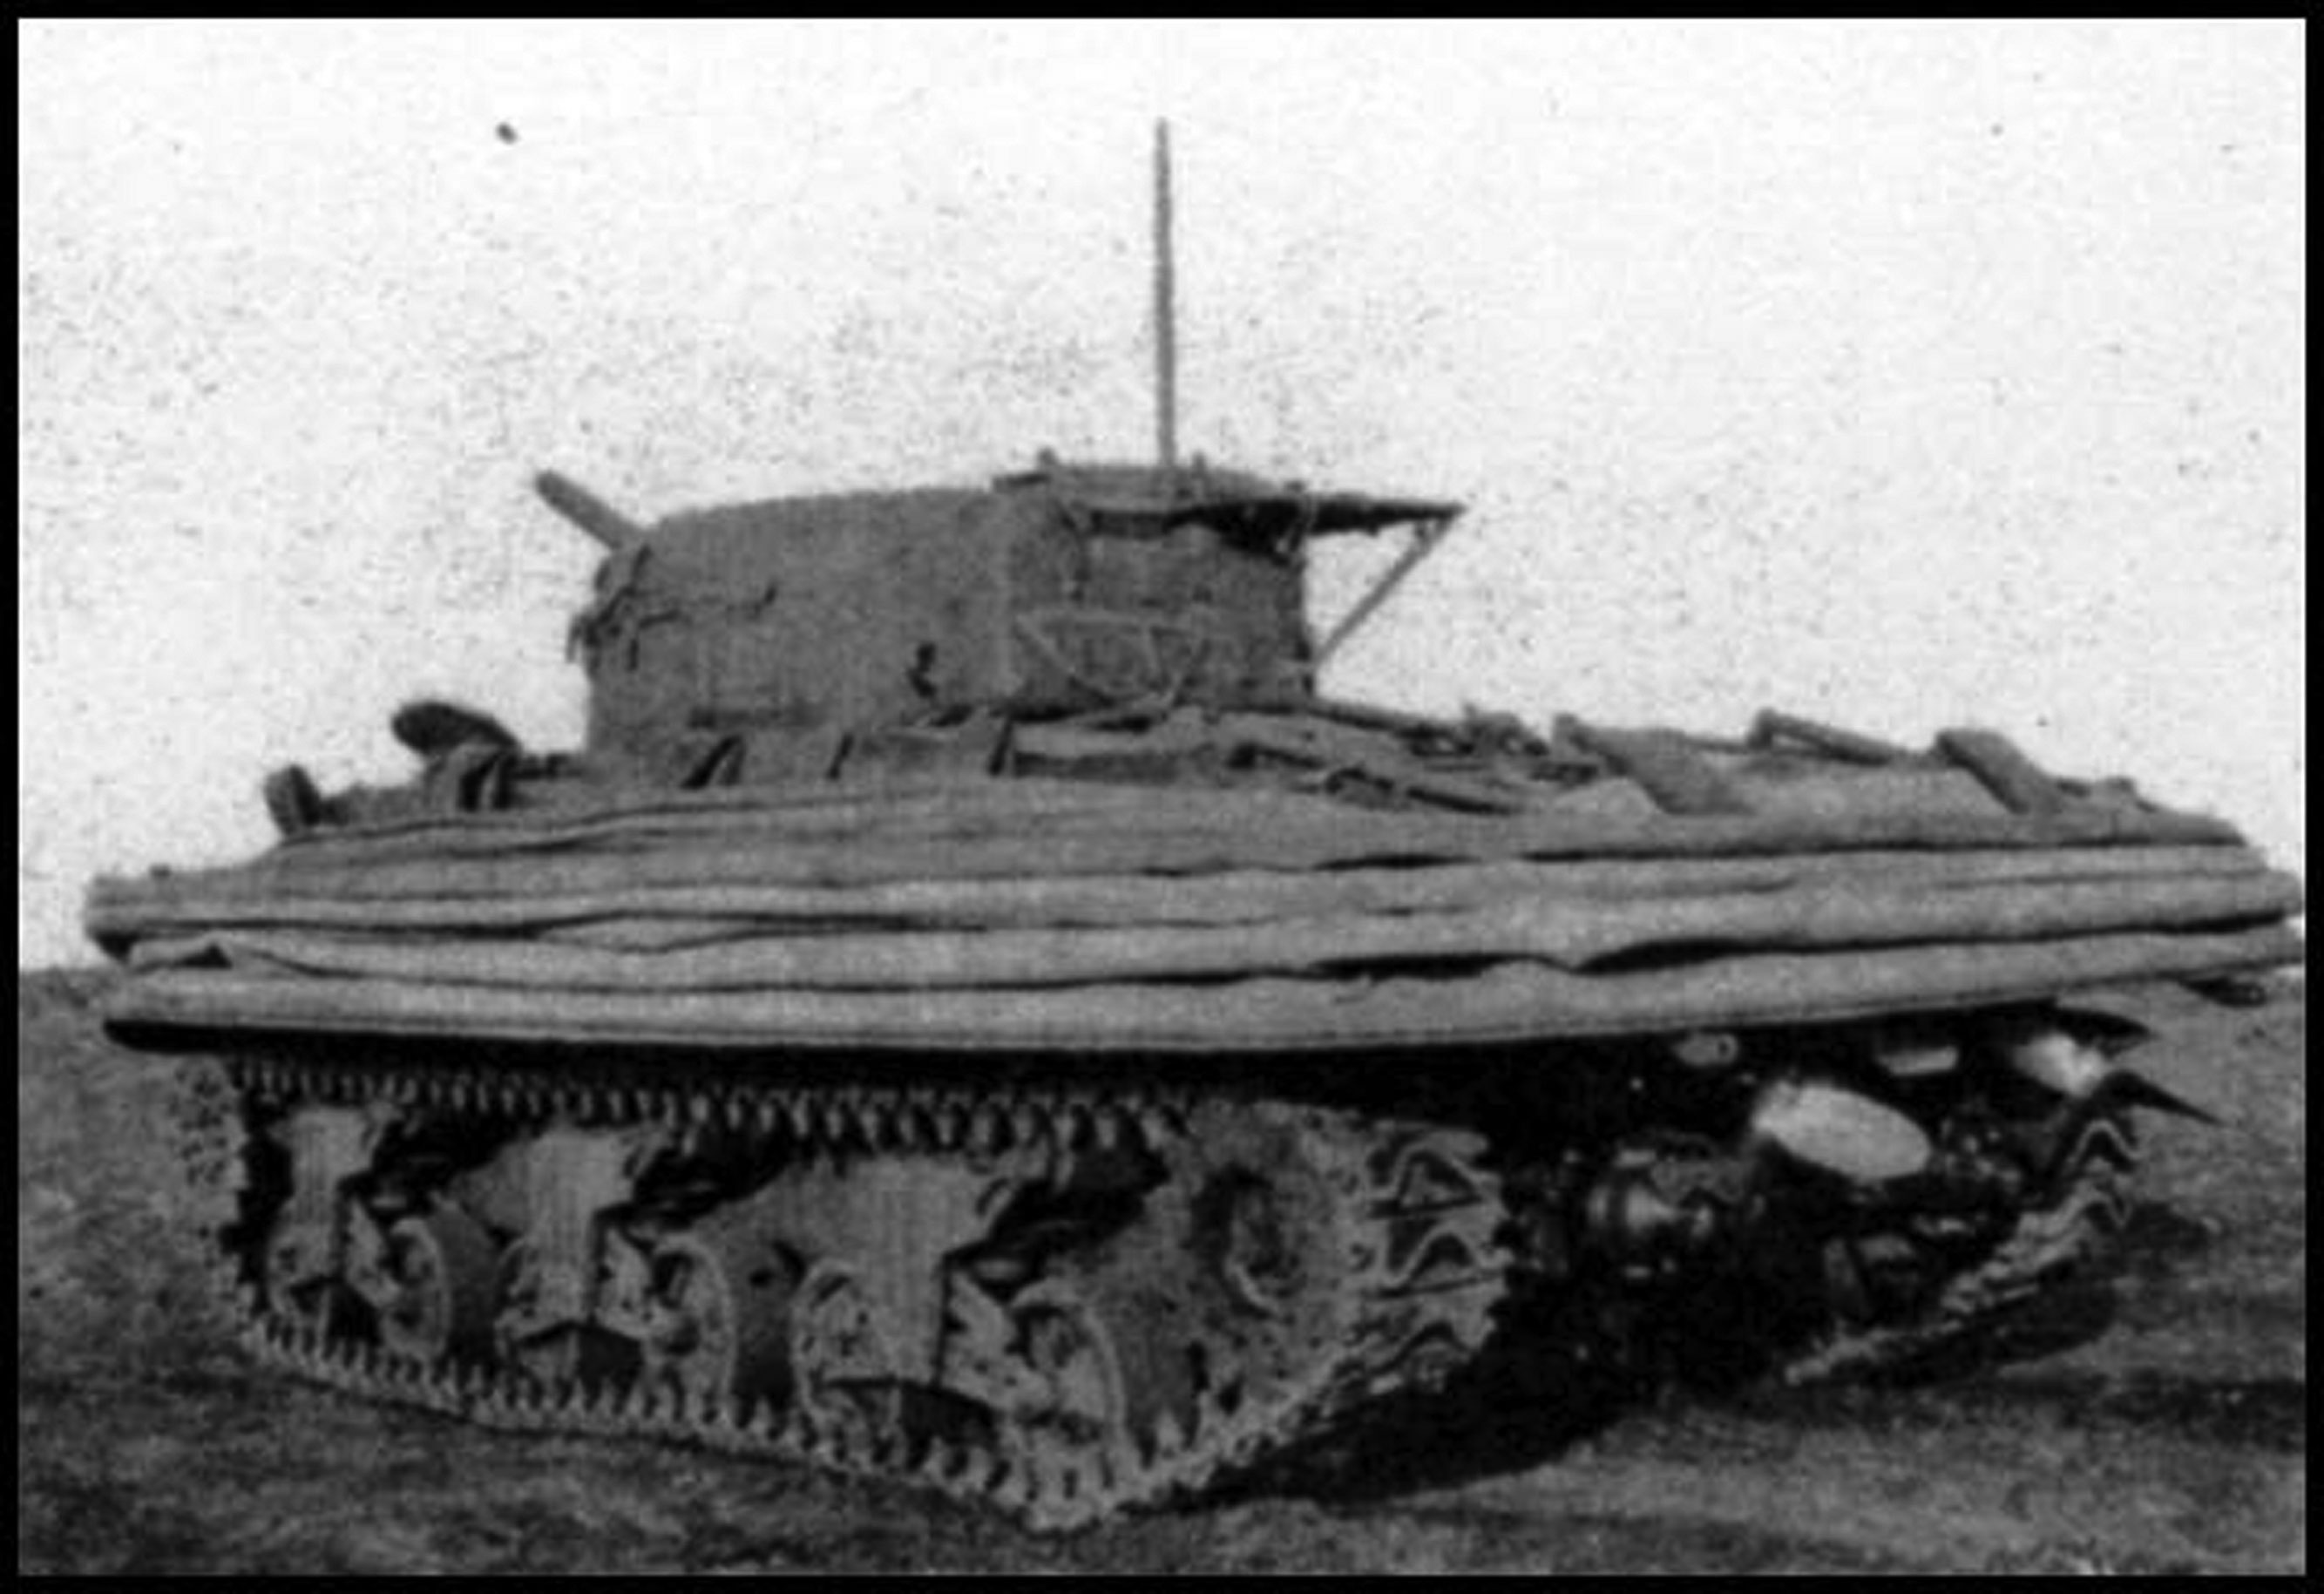 A Double Duplex tank with the floatation skirt lowered.